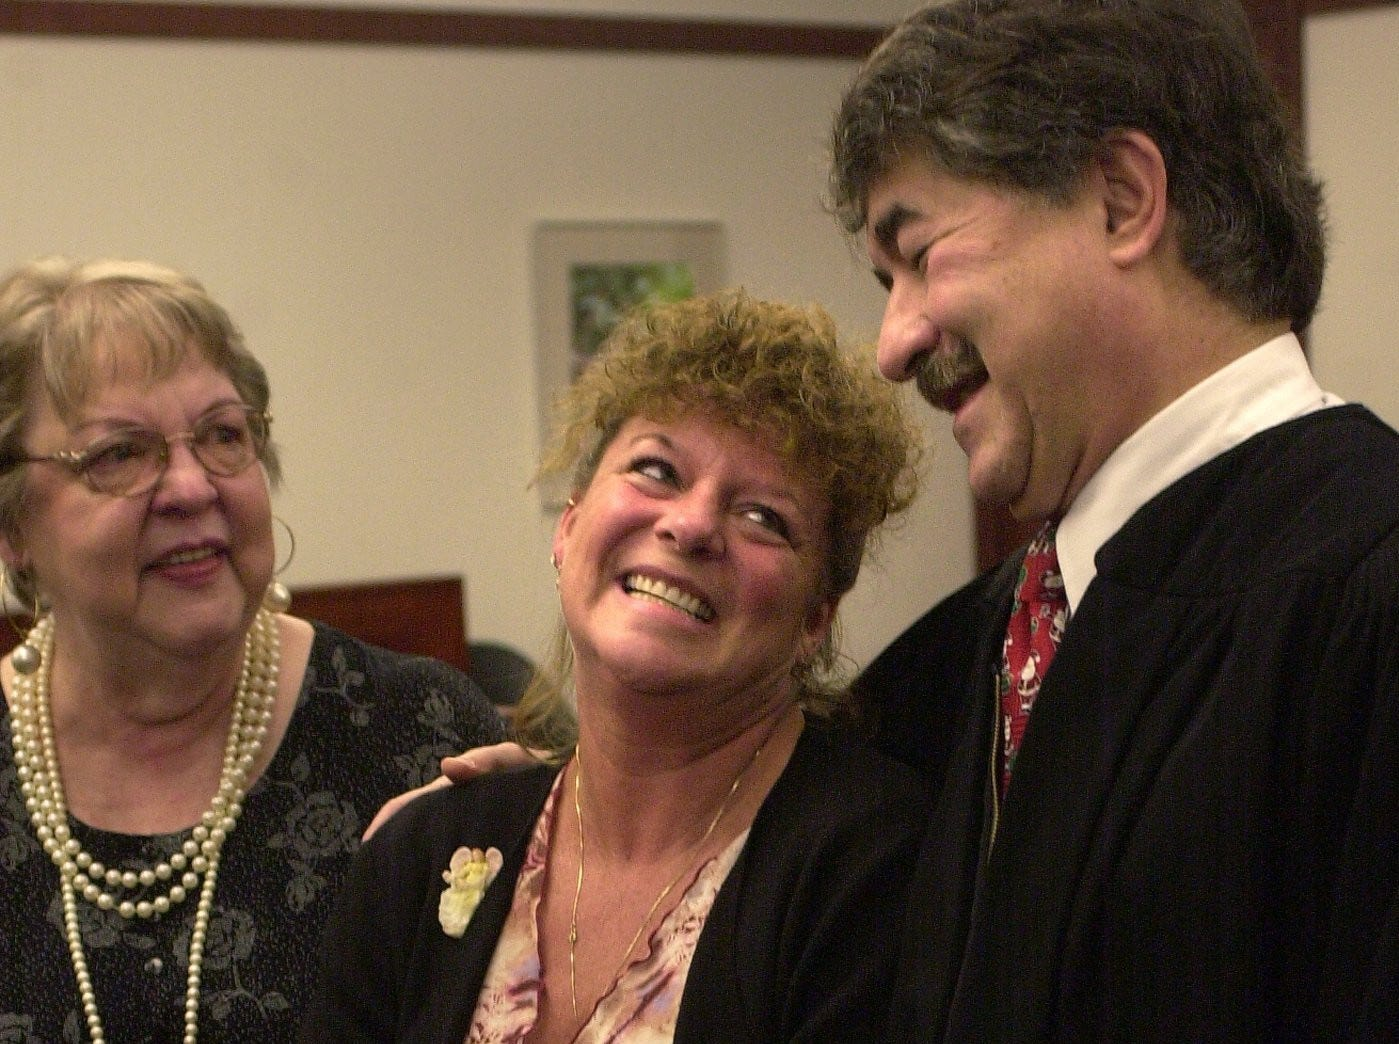 Susan Allen, center, beams after her parental adoption of Ty Anthany Adams Allen, 5, her grandson, center, was finalized in Probate Judge George Economy's courtroom Dec. 20, 2002. At left behind is Susan's mother and Ty's great grandmother Donna Compton, and at right is Judge George Economy.